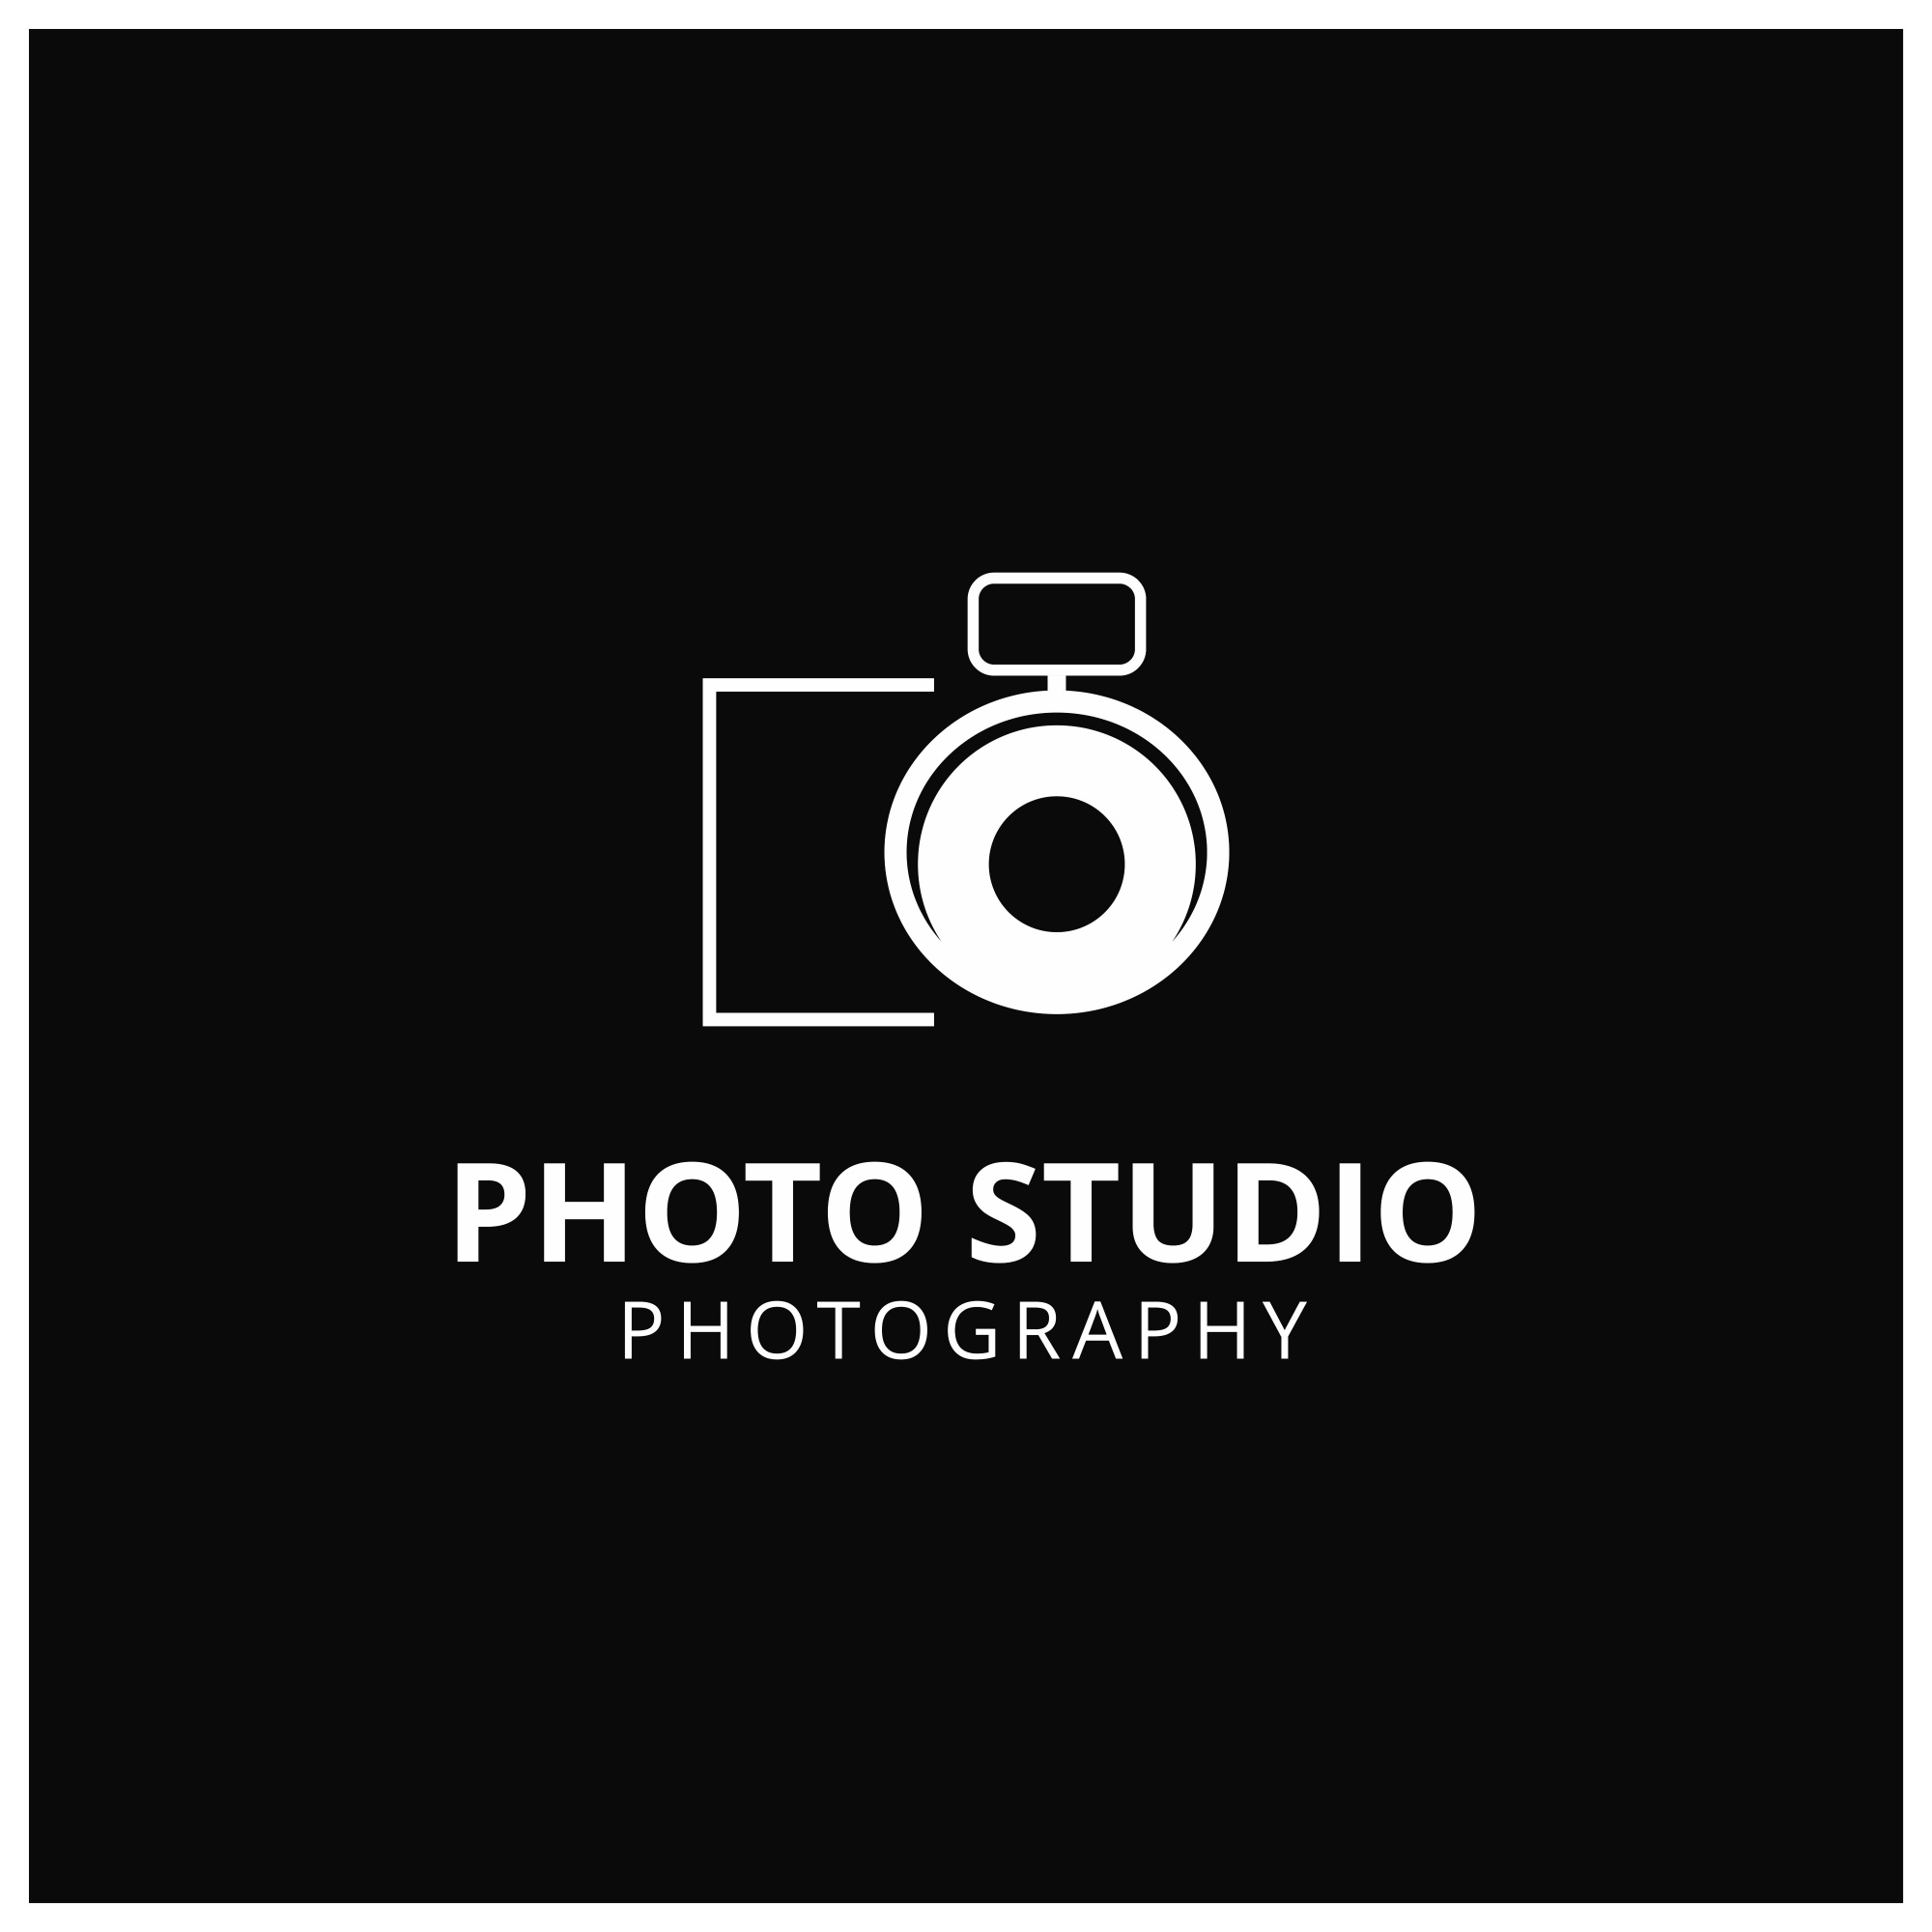 Dark logo for photographers